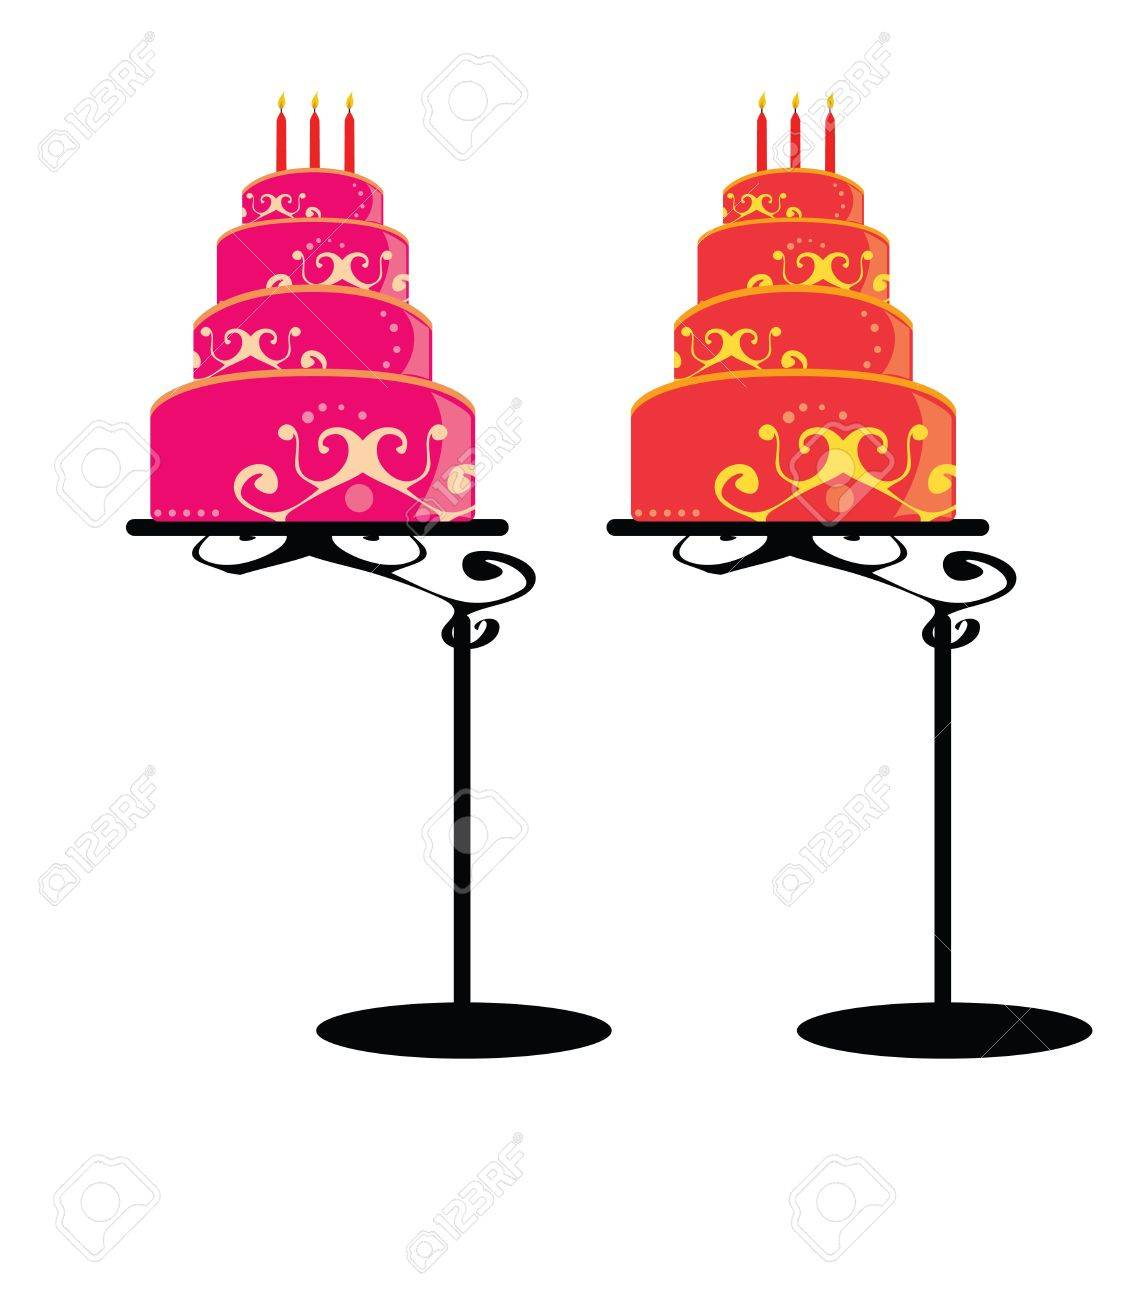 Cakes with decoration in pink and orange on a white background - 7315083